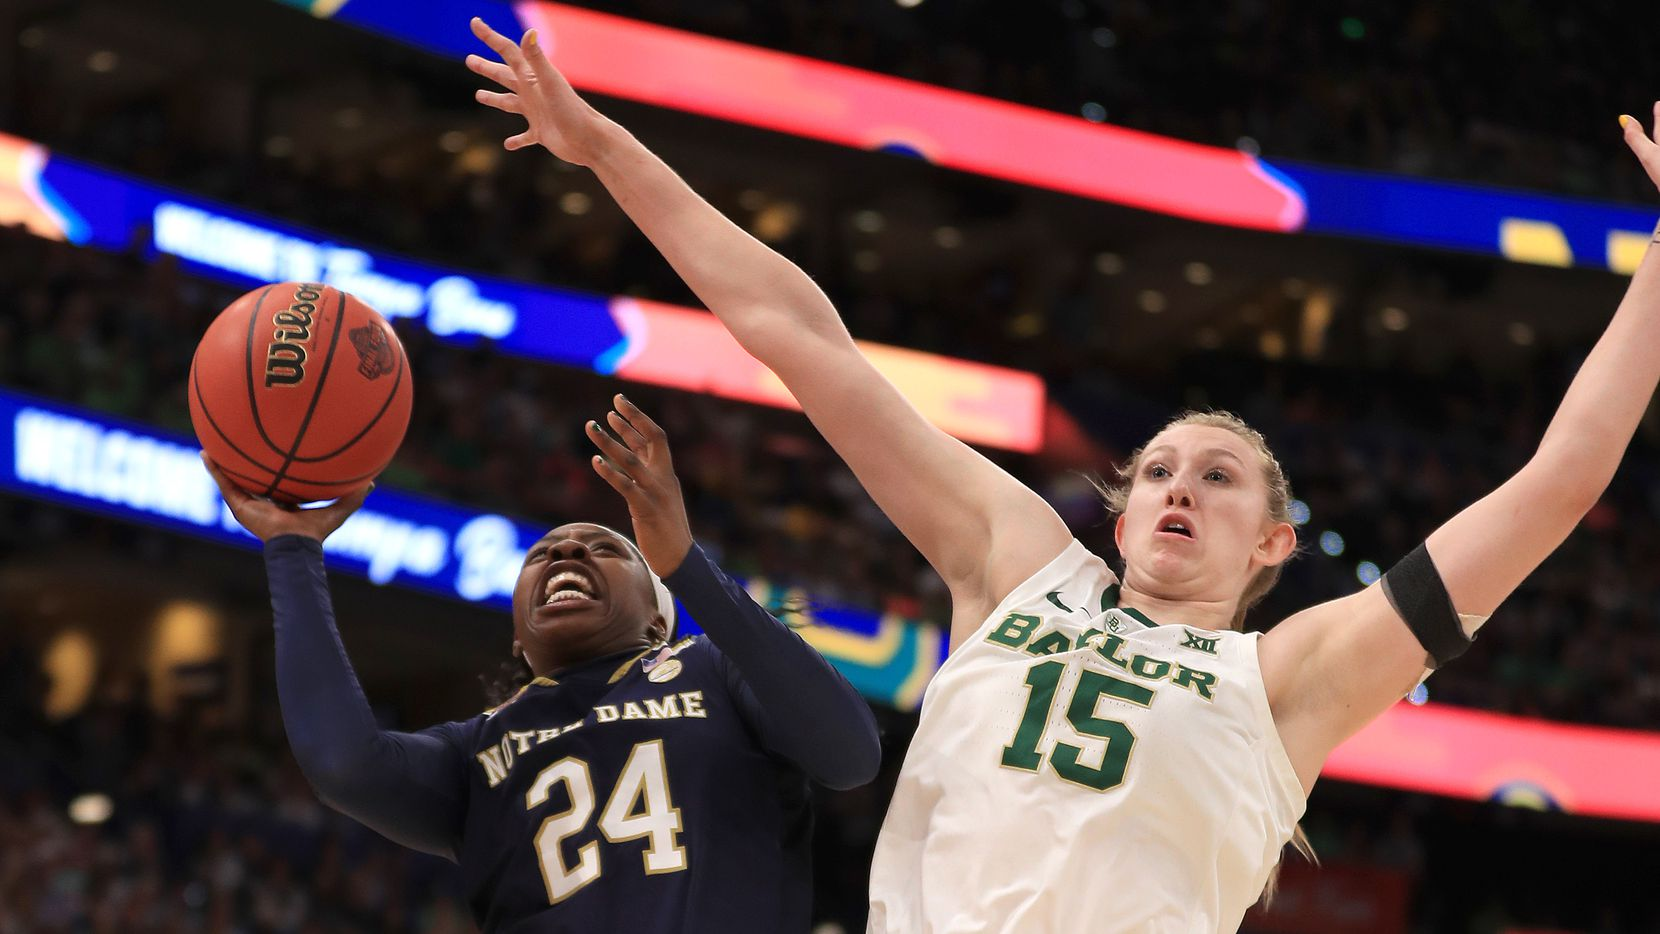 FILE - Notre Dame guard Arike Ogunbowale (left) attempts a shot against Baylor forward Lauren Cox during the first quarter in the championship game of the 2019 Women's Final Four at Amalie Arena on April 7, 2019, in Tampa, Fla.